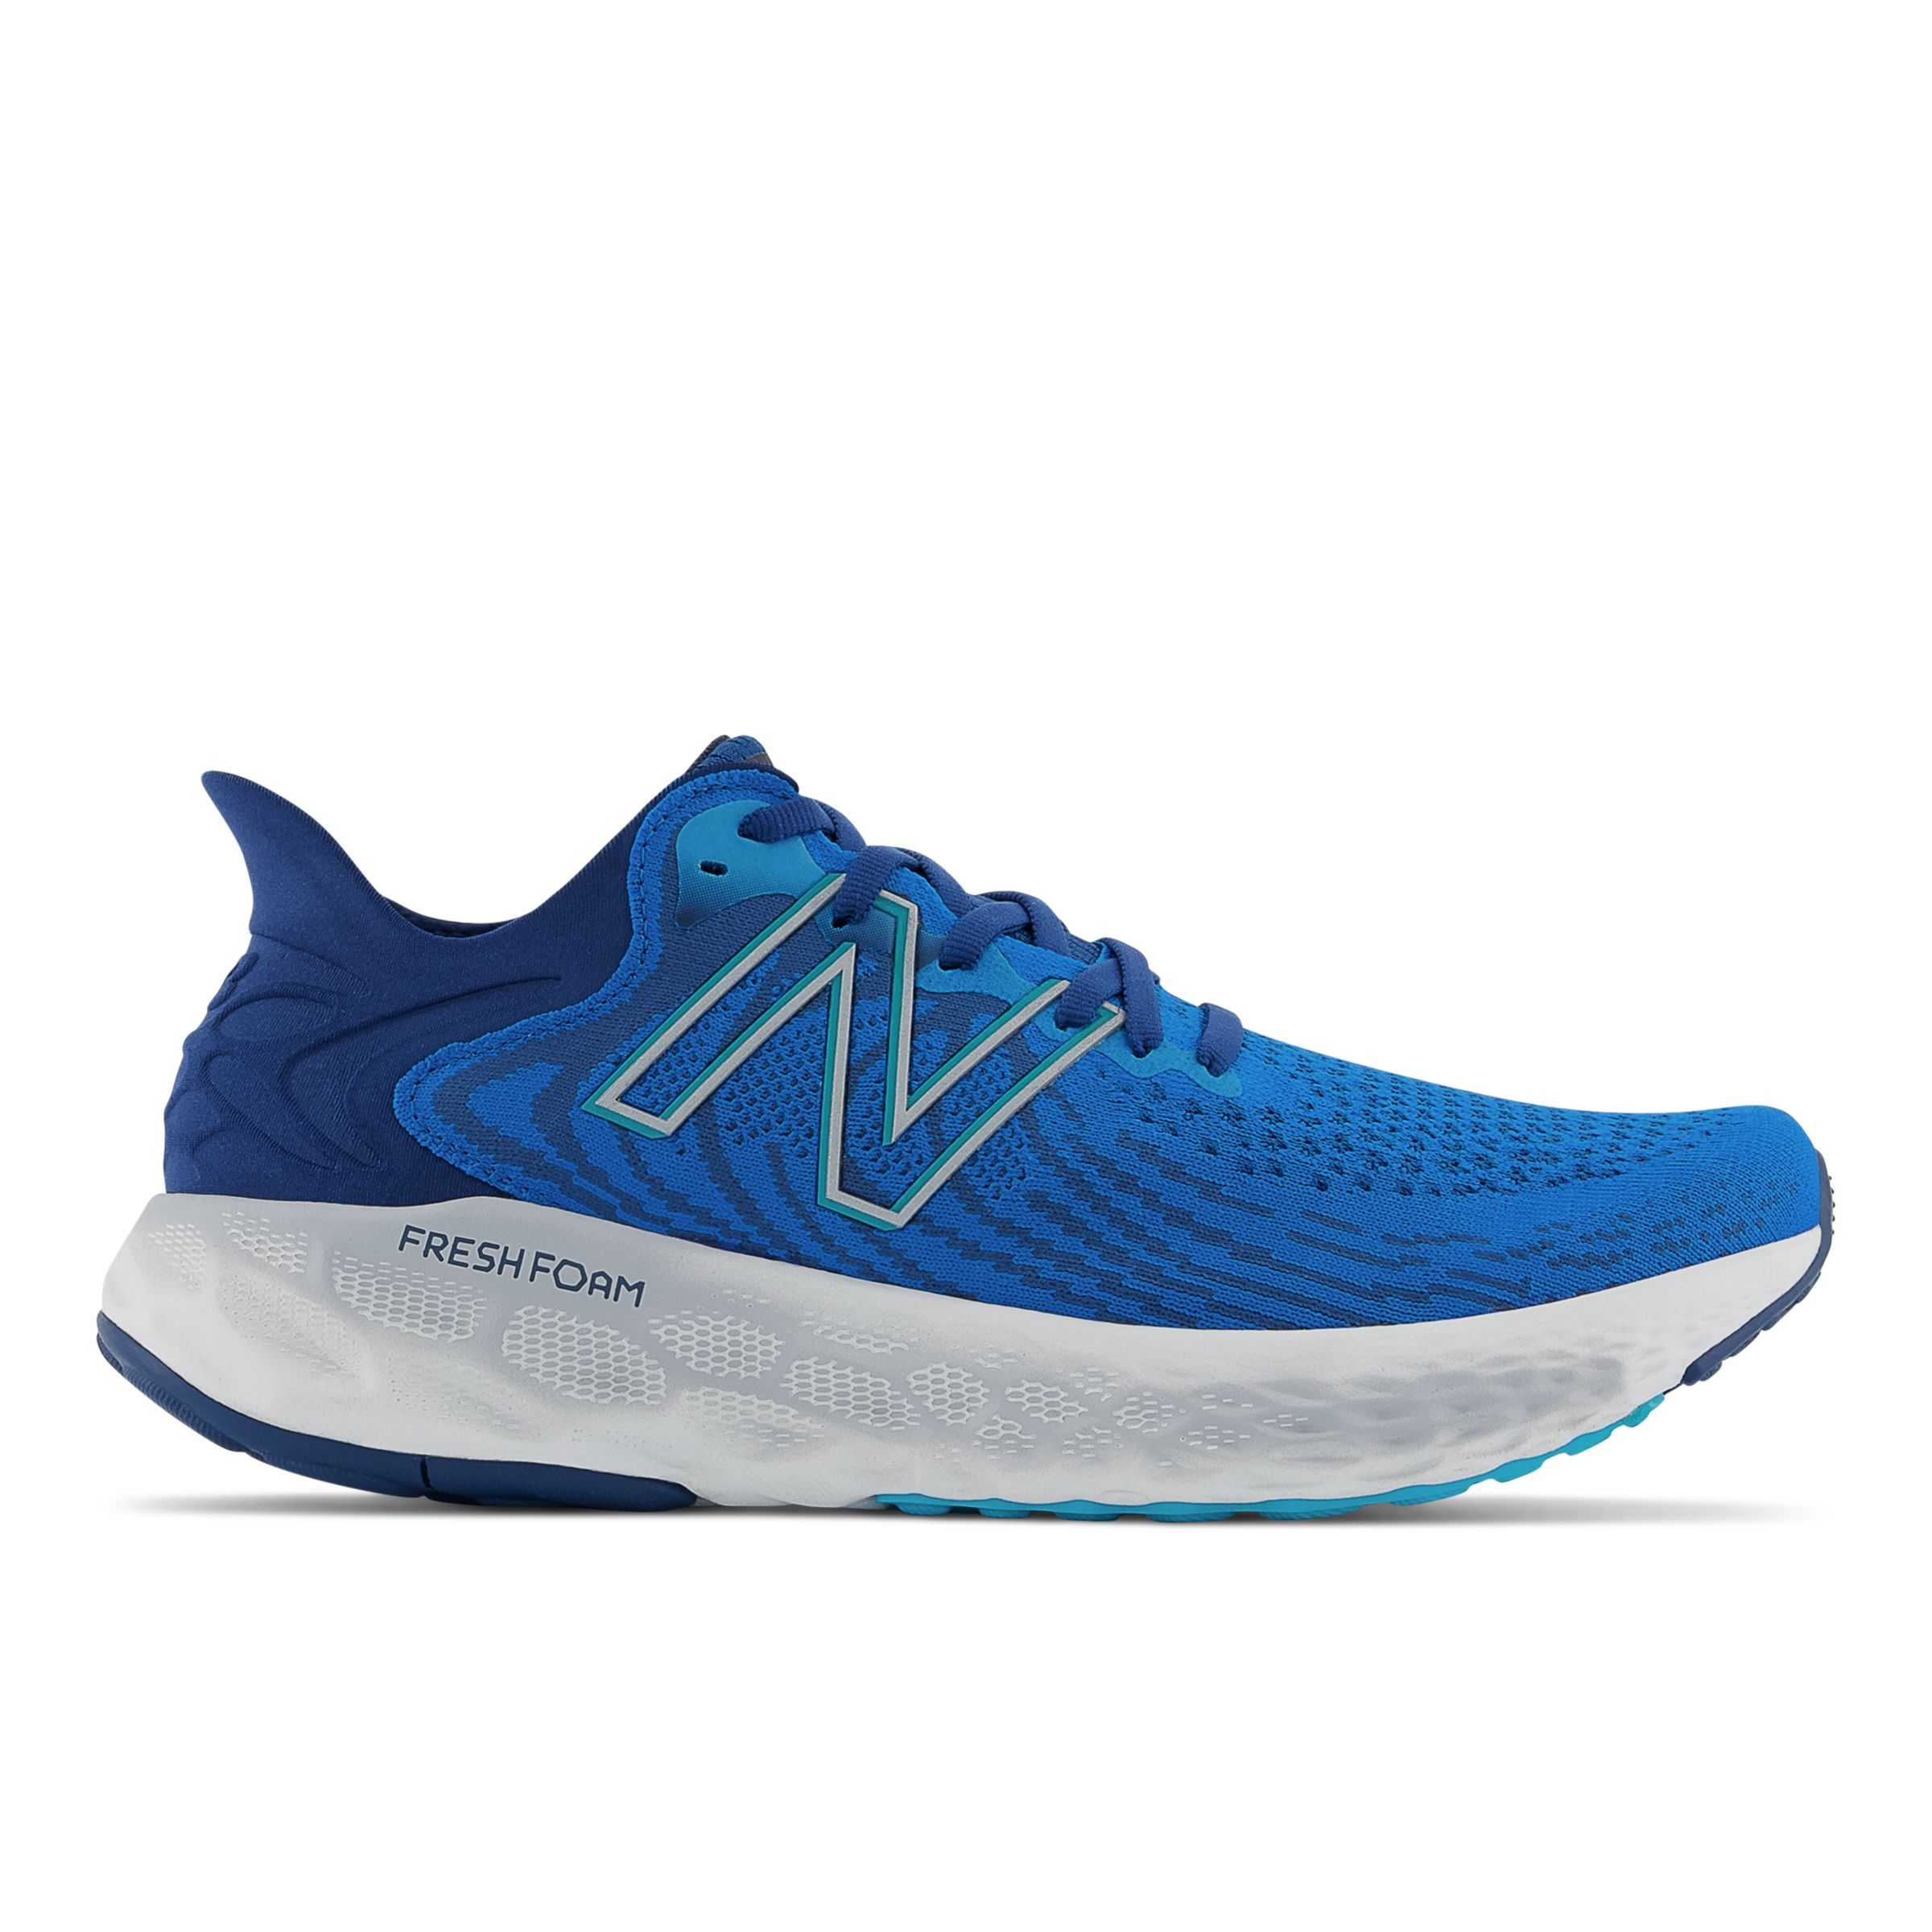 New Balance Fresh Foam 1080v11